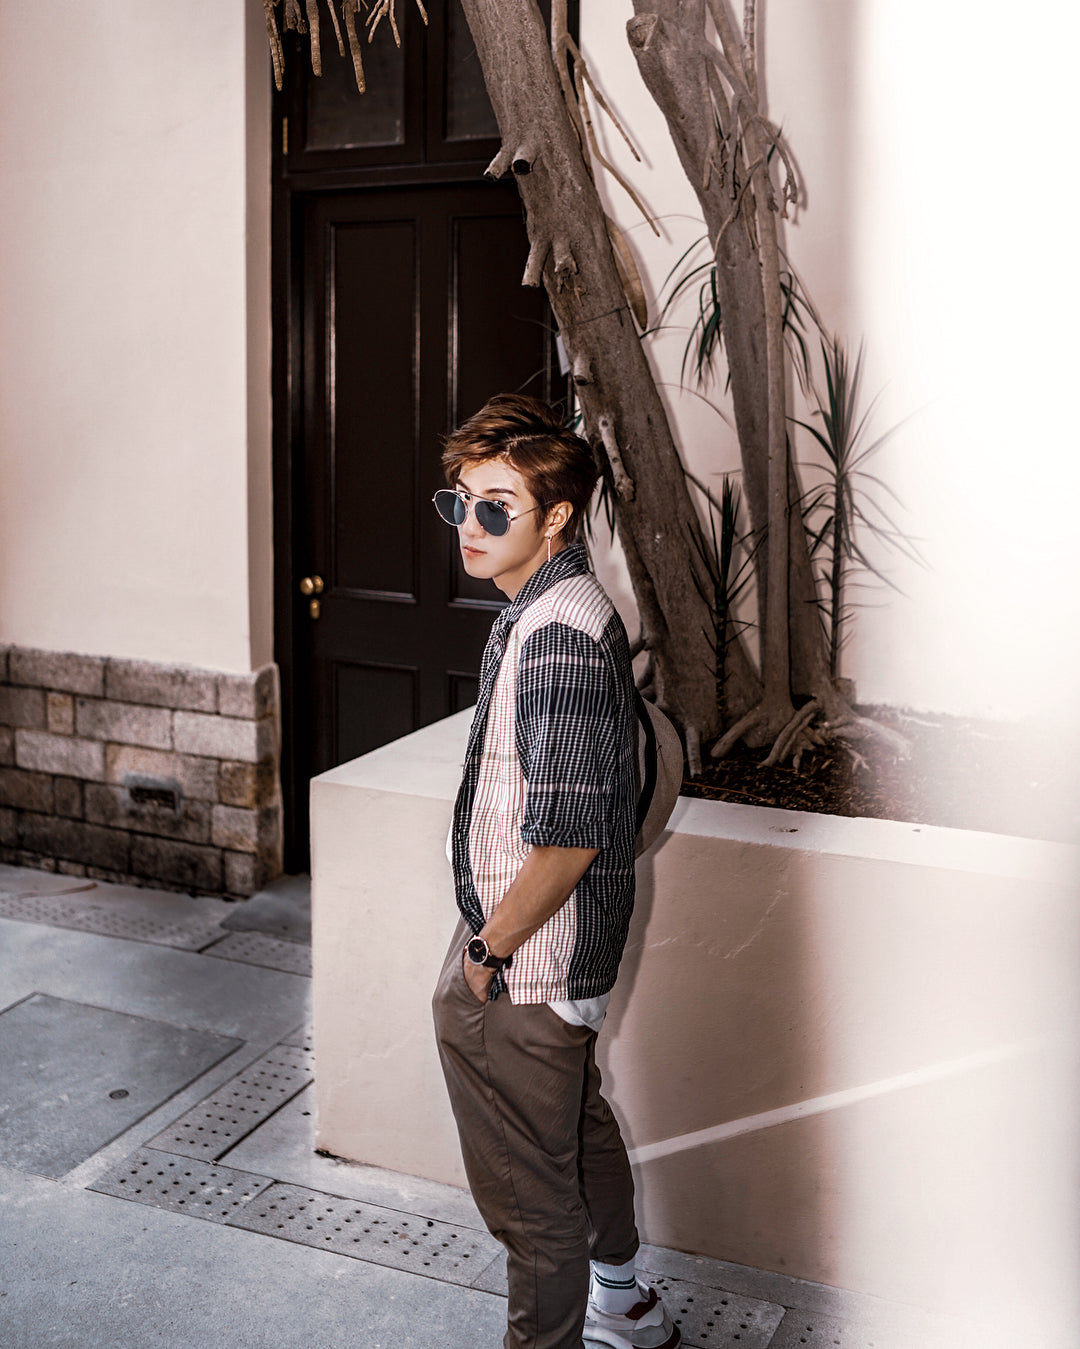 Ivan Lui wears REVE by RENE 4am aviator sunglasses